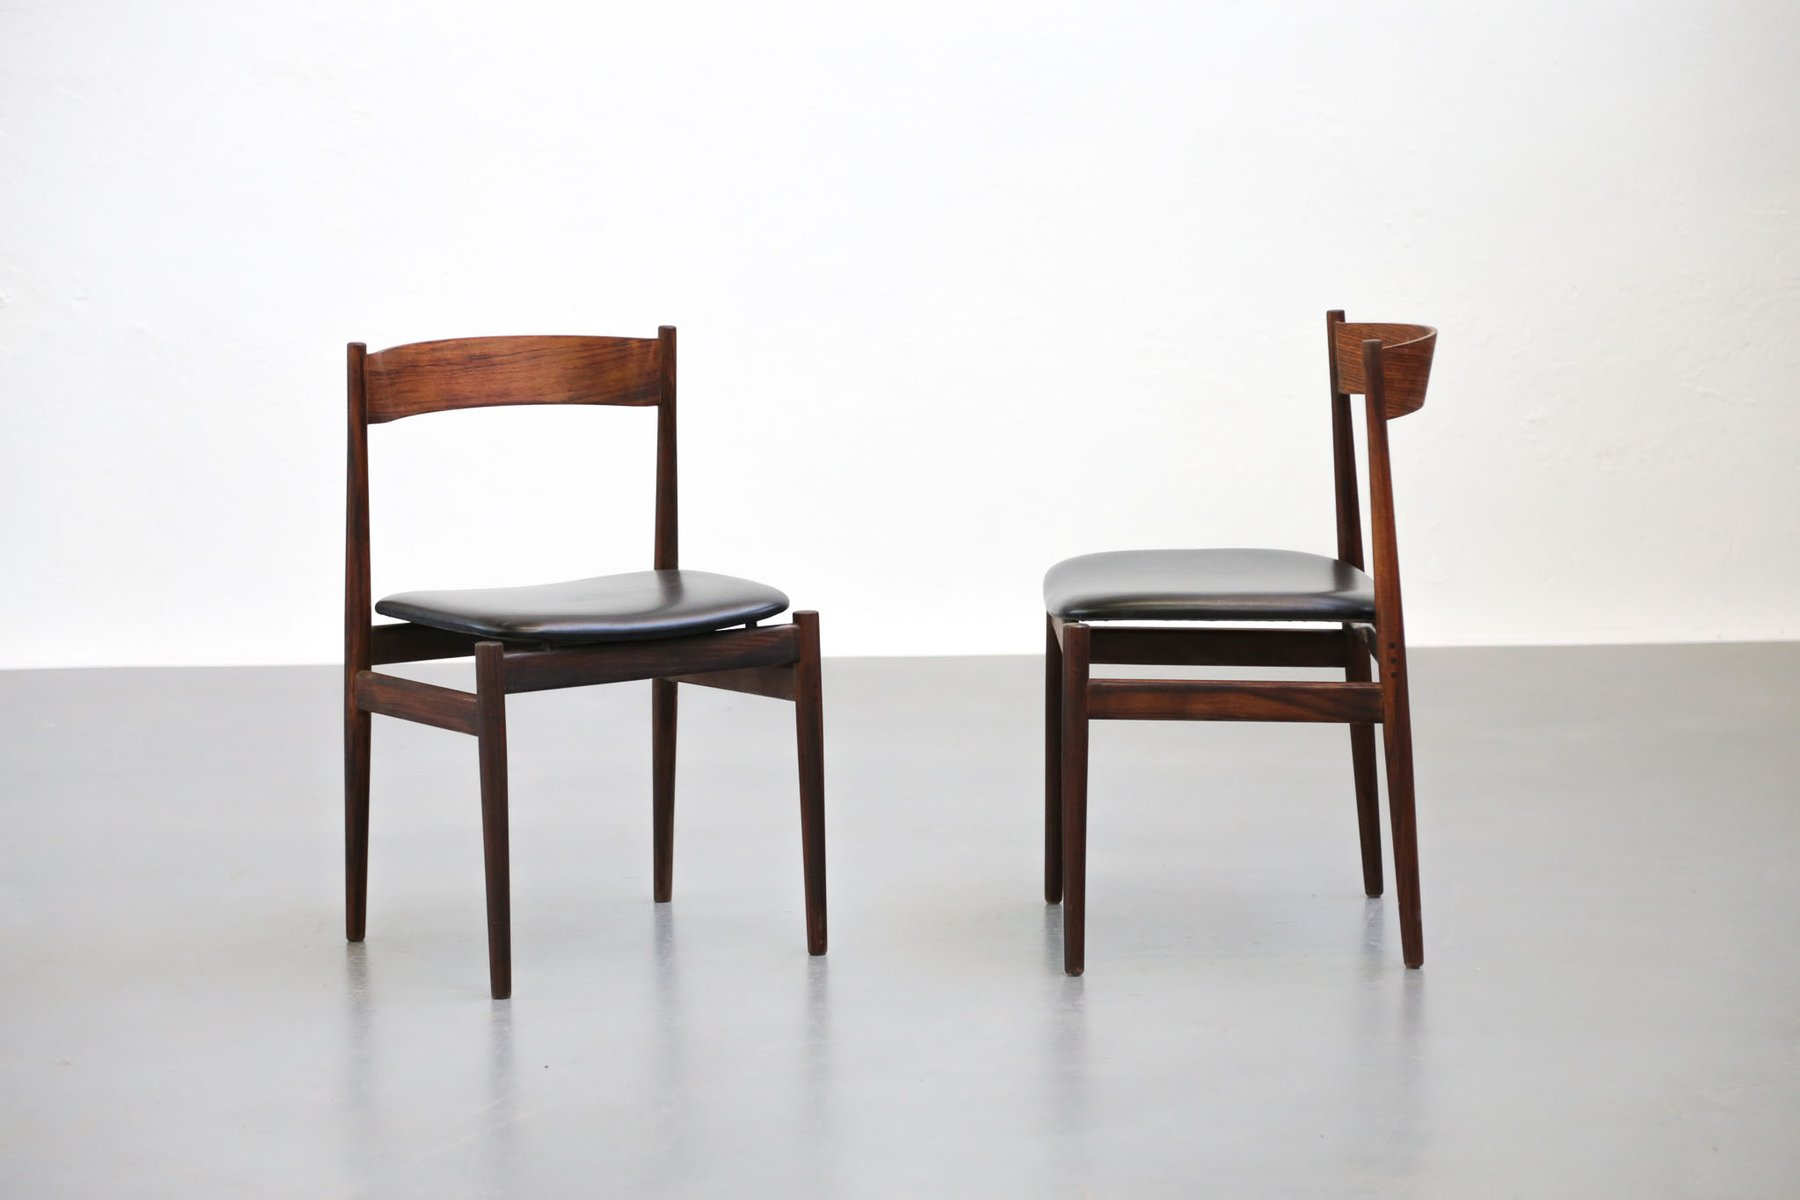 Italian Chairs by Gianfranco Frattini for Cassina 1960s Set of 4